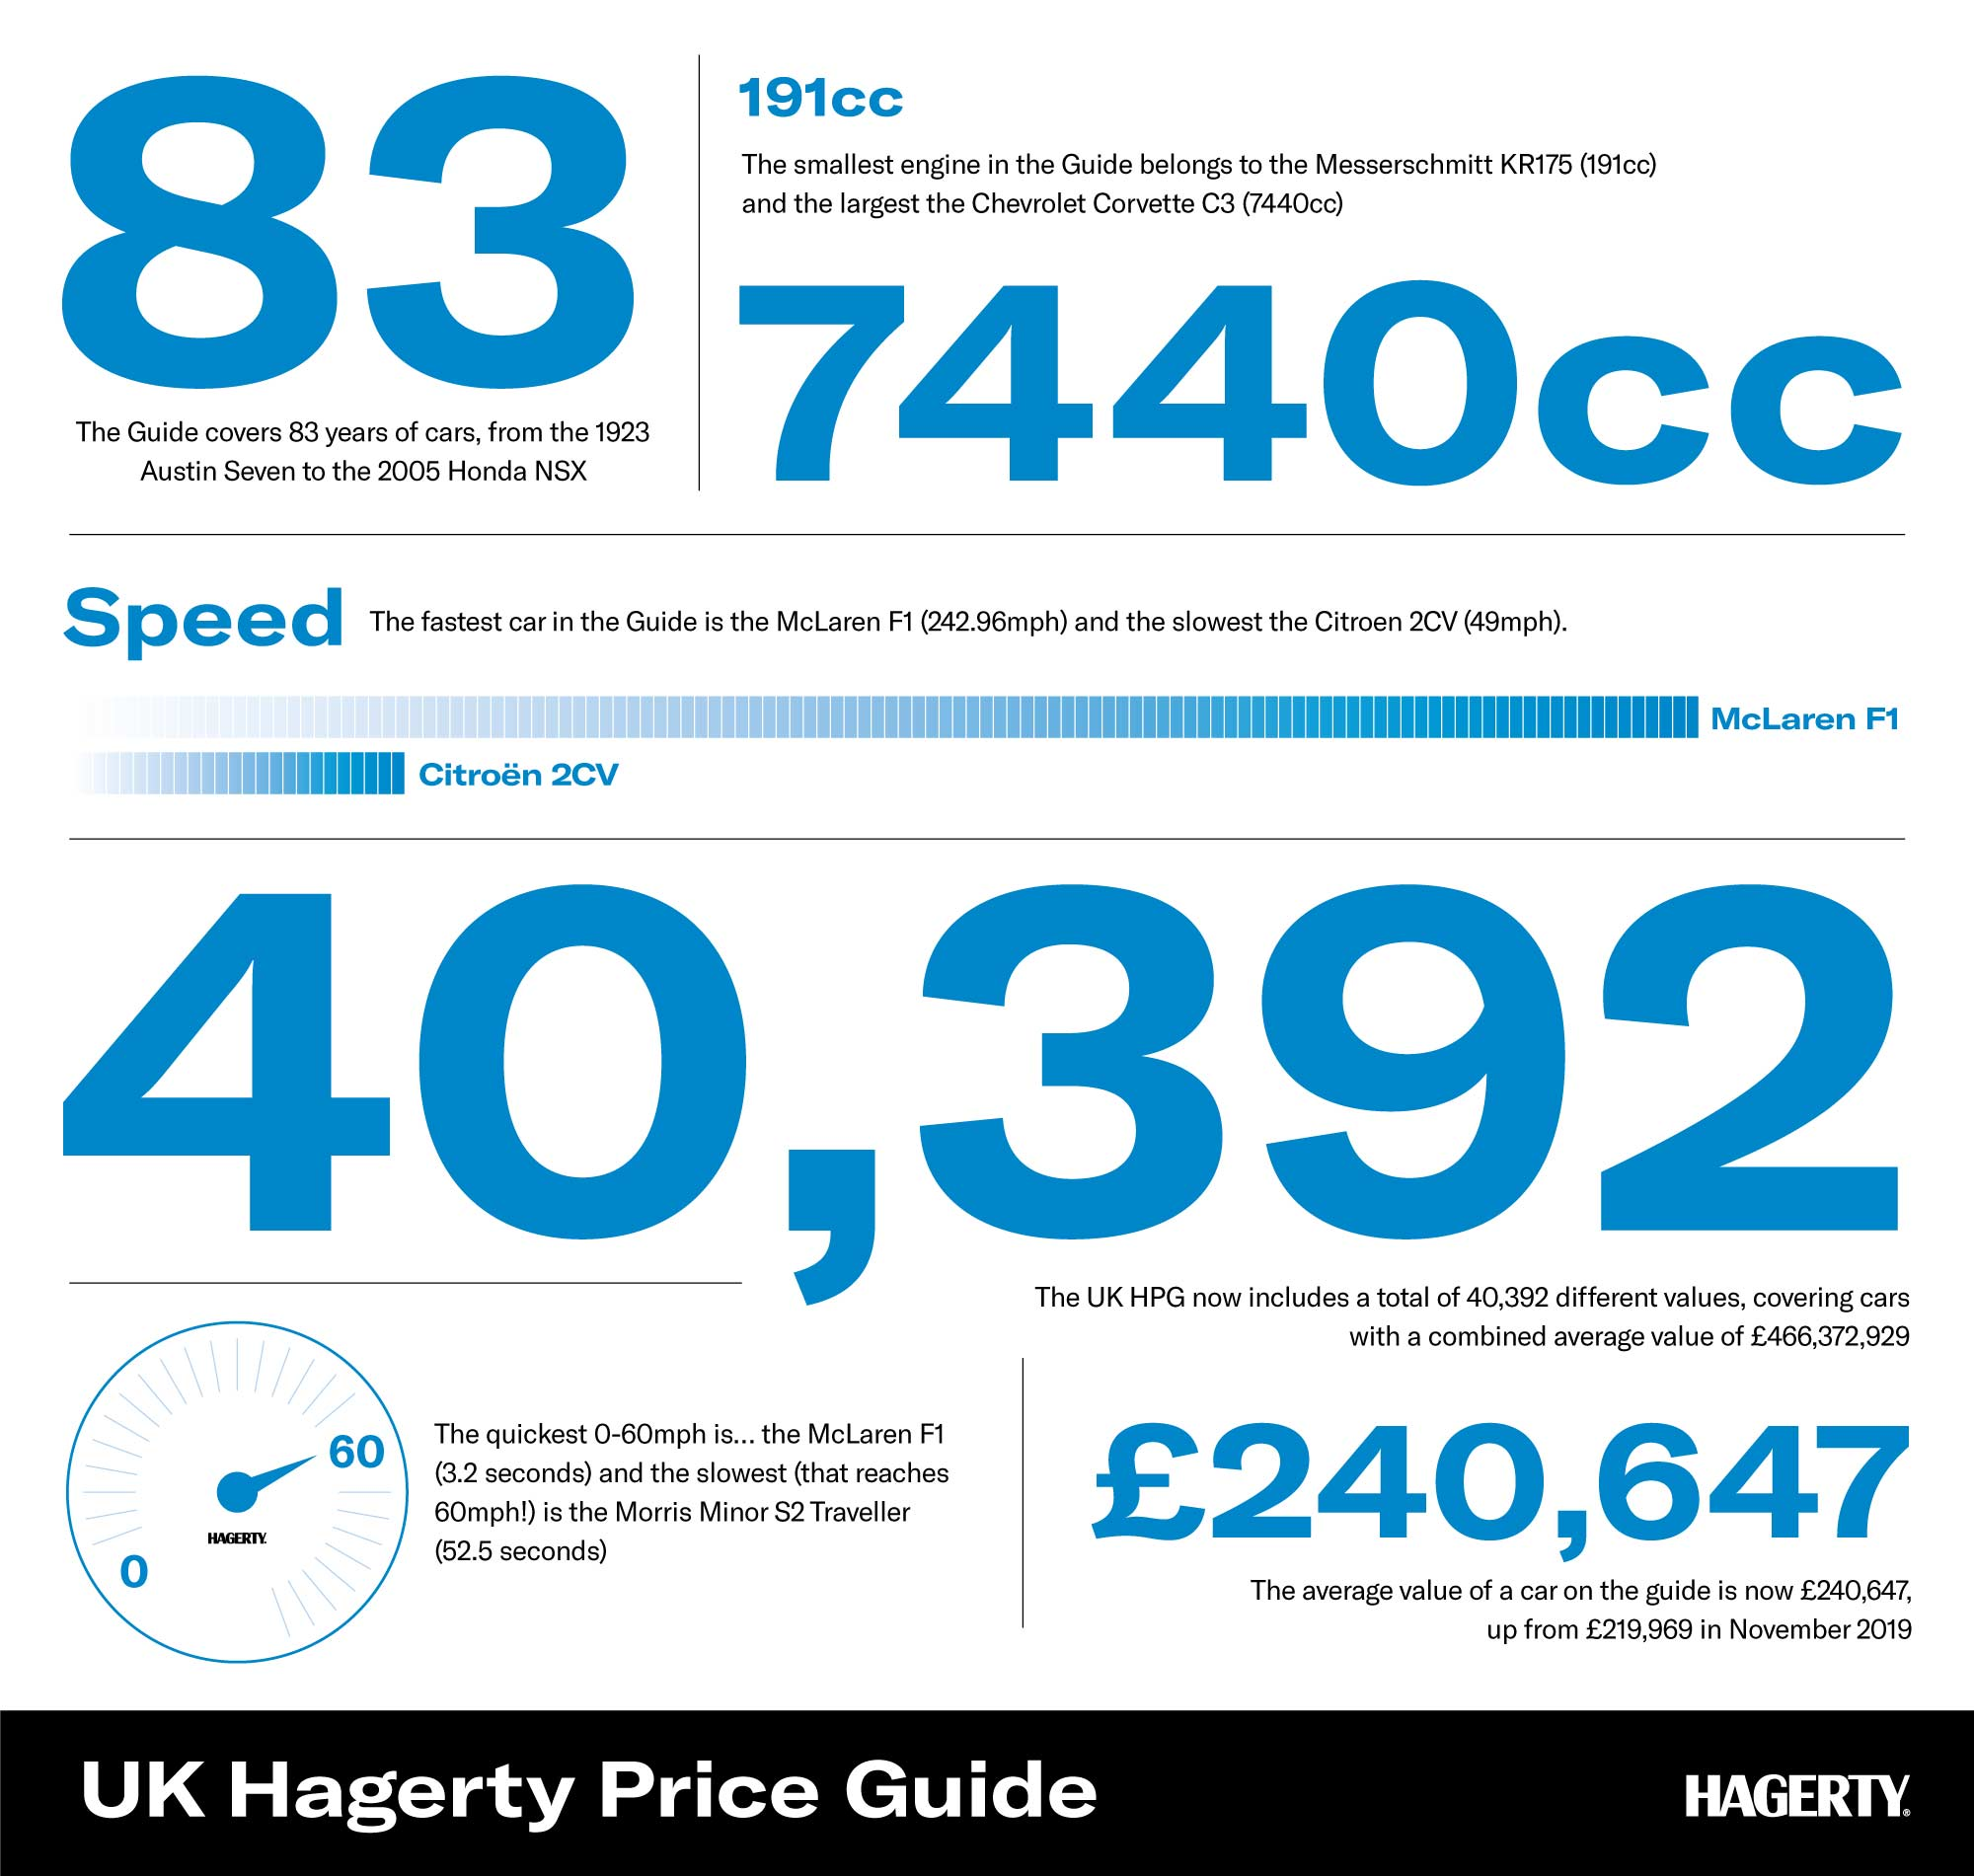 Infographic showing the latest trends from the UK Hagerty Price Guide 2020